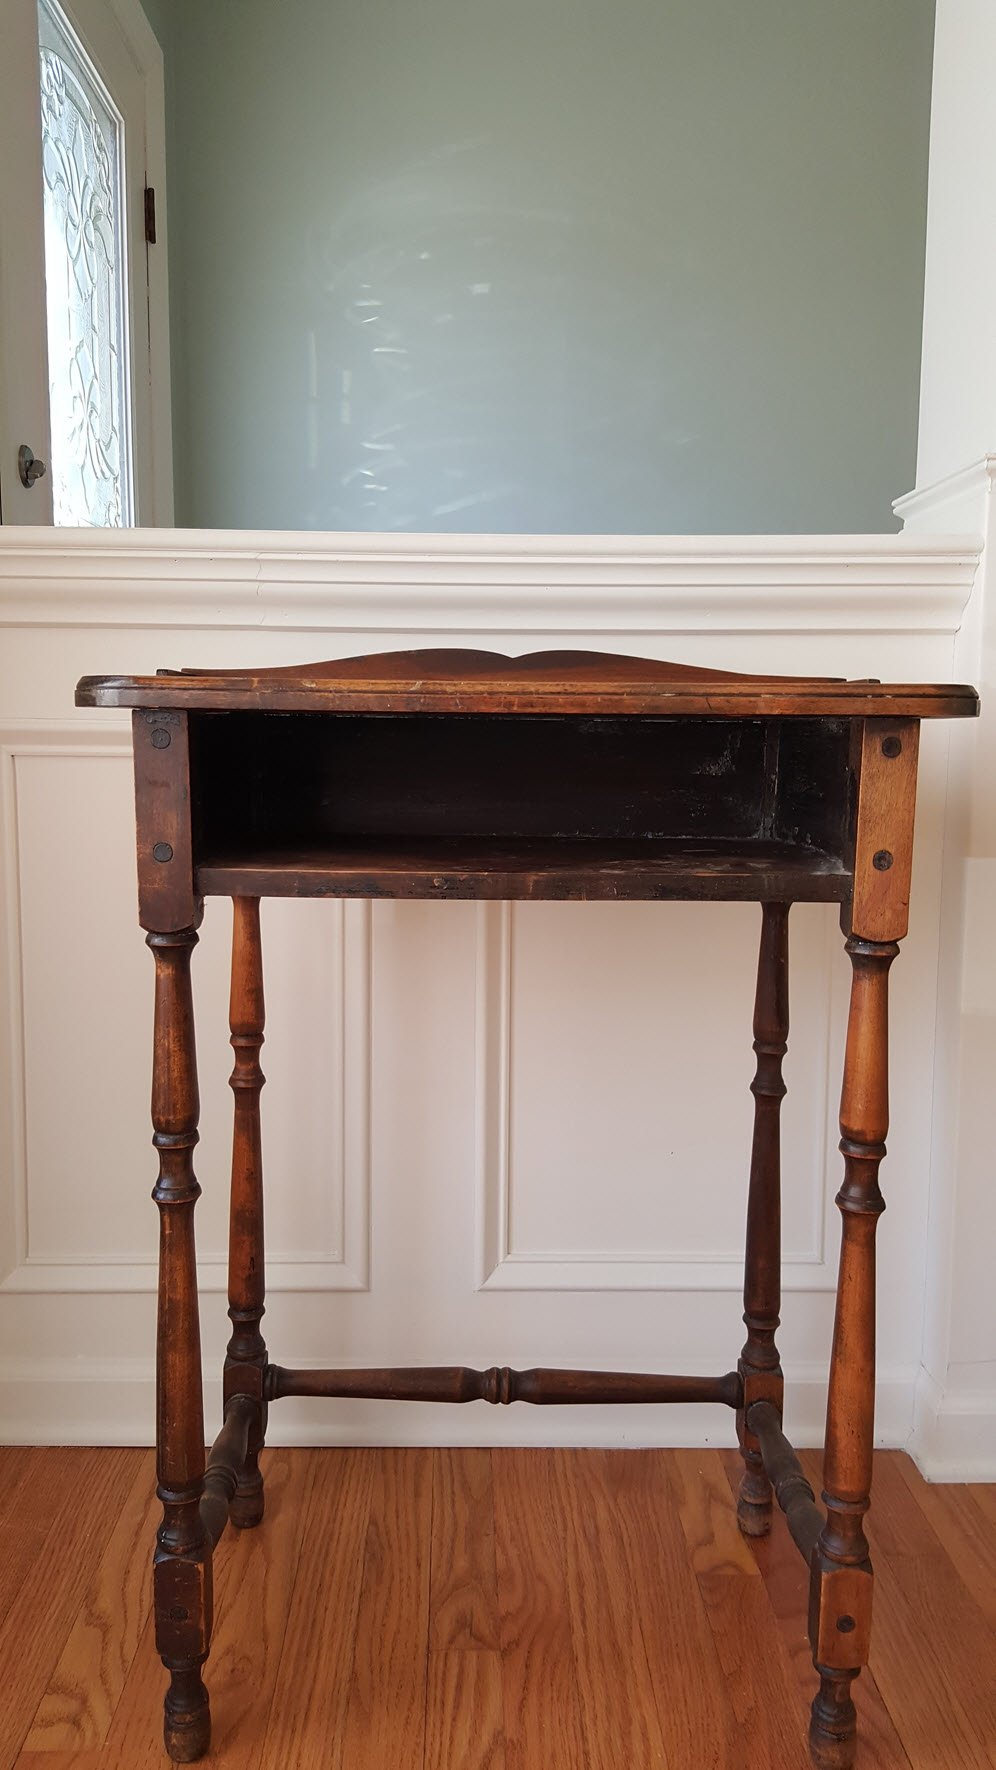 My old telephone table before- Antique Table Gets A Paint Makeover in Beautiful Poetic Blue